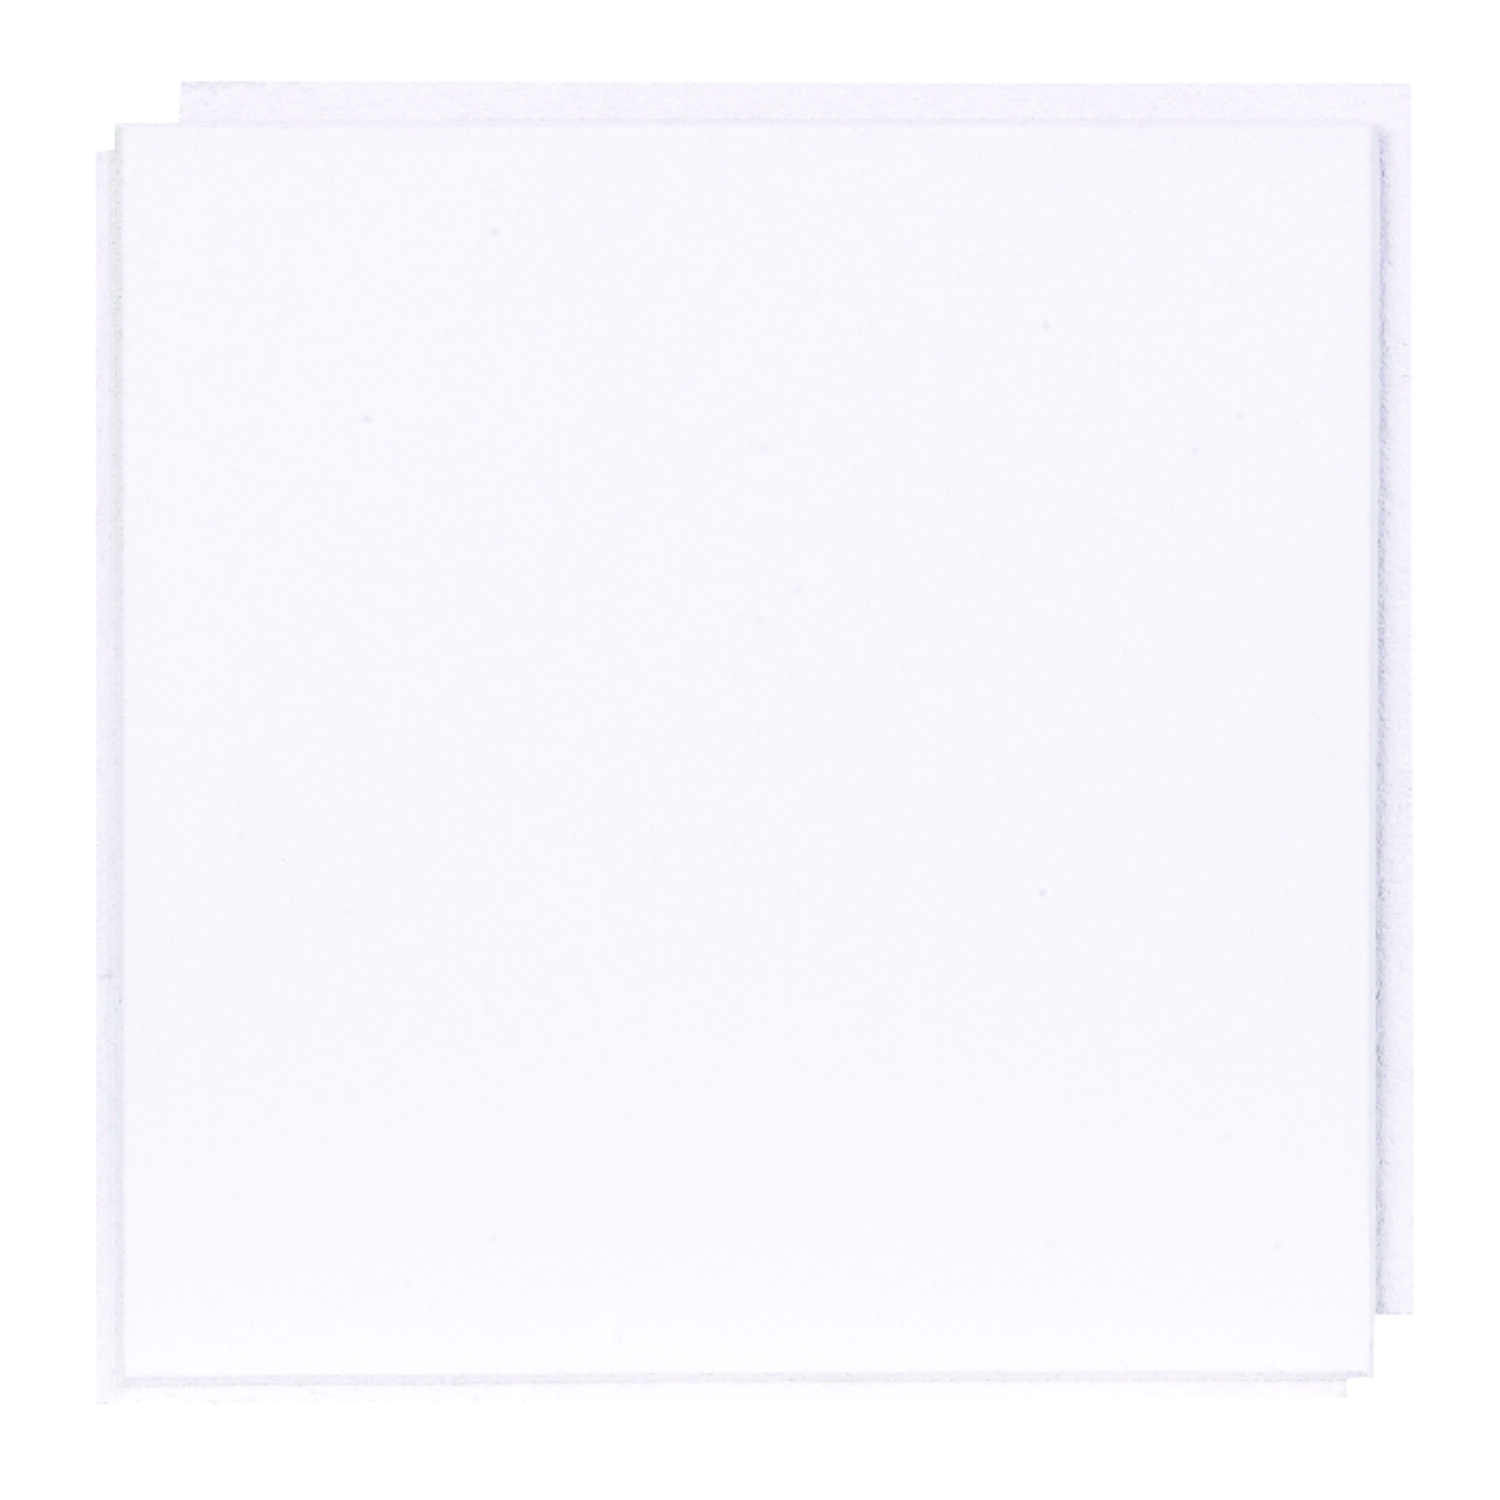 USG  Custom  12 in. L x 12 in. W 0.5 in. Staple  Ceiling Tile  1 pk